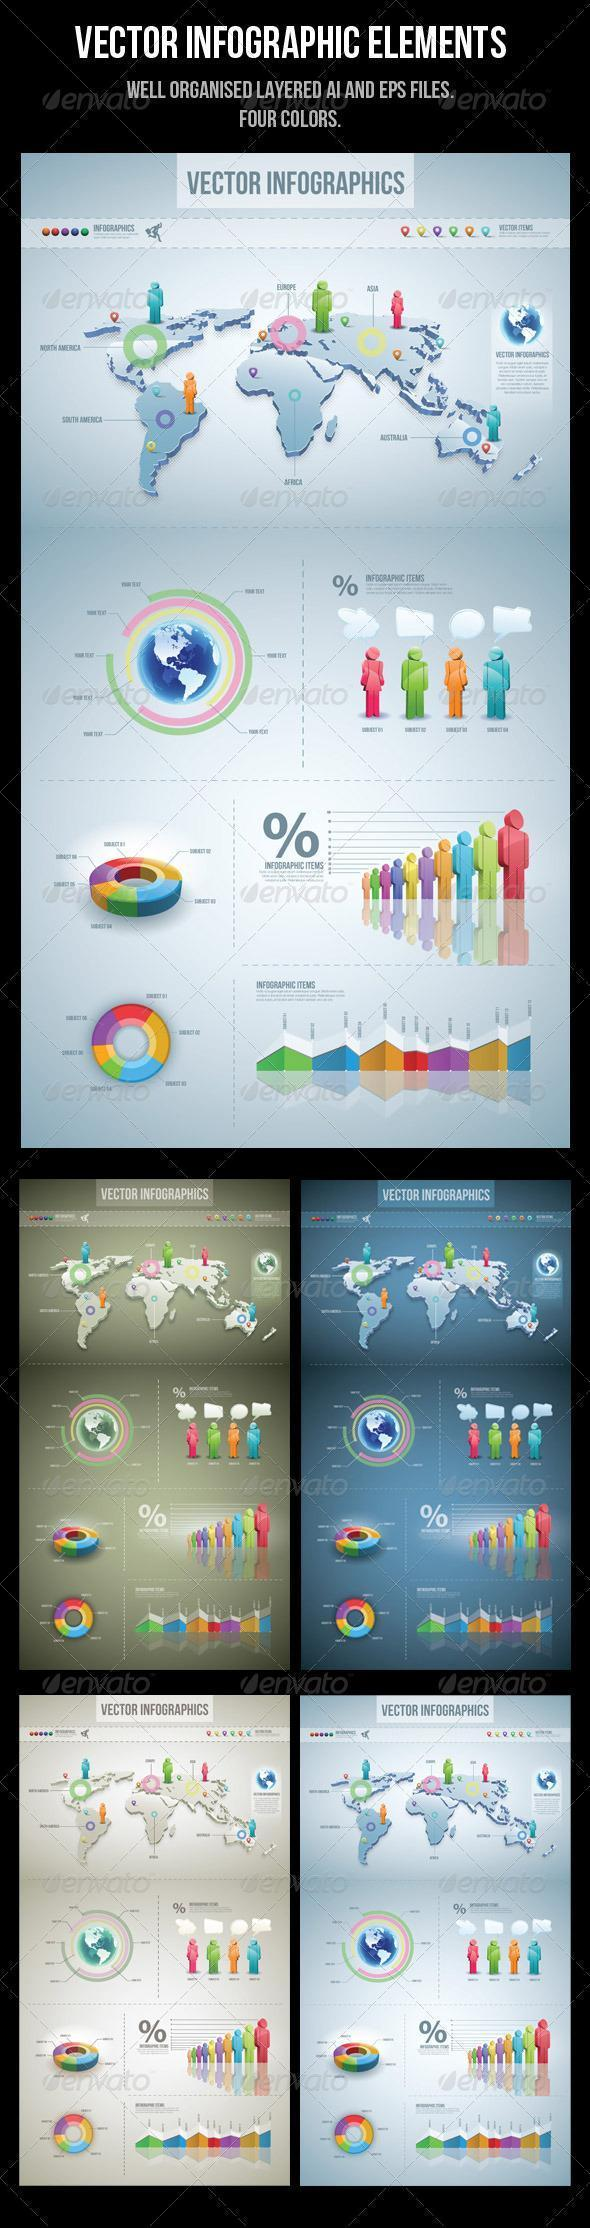 3D Infographic Glossy Style Template